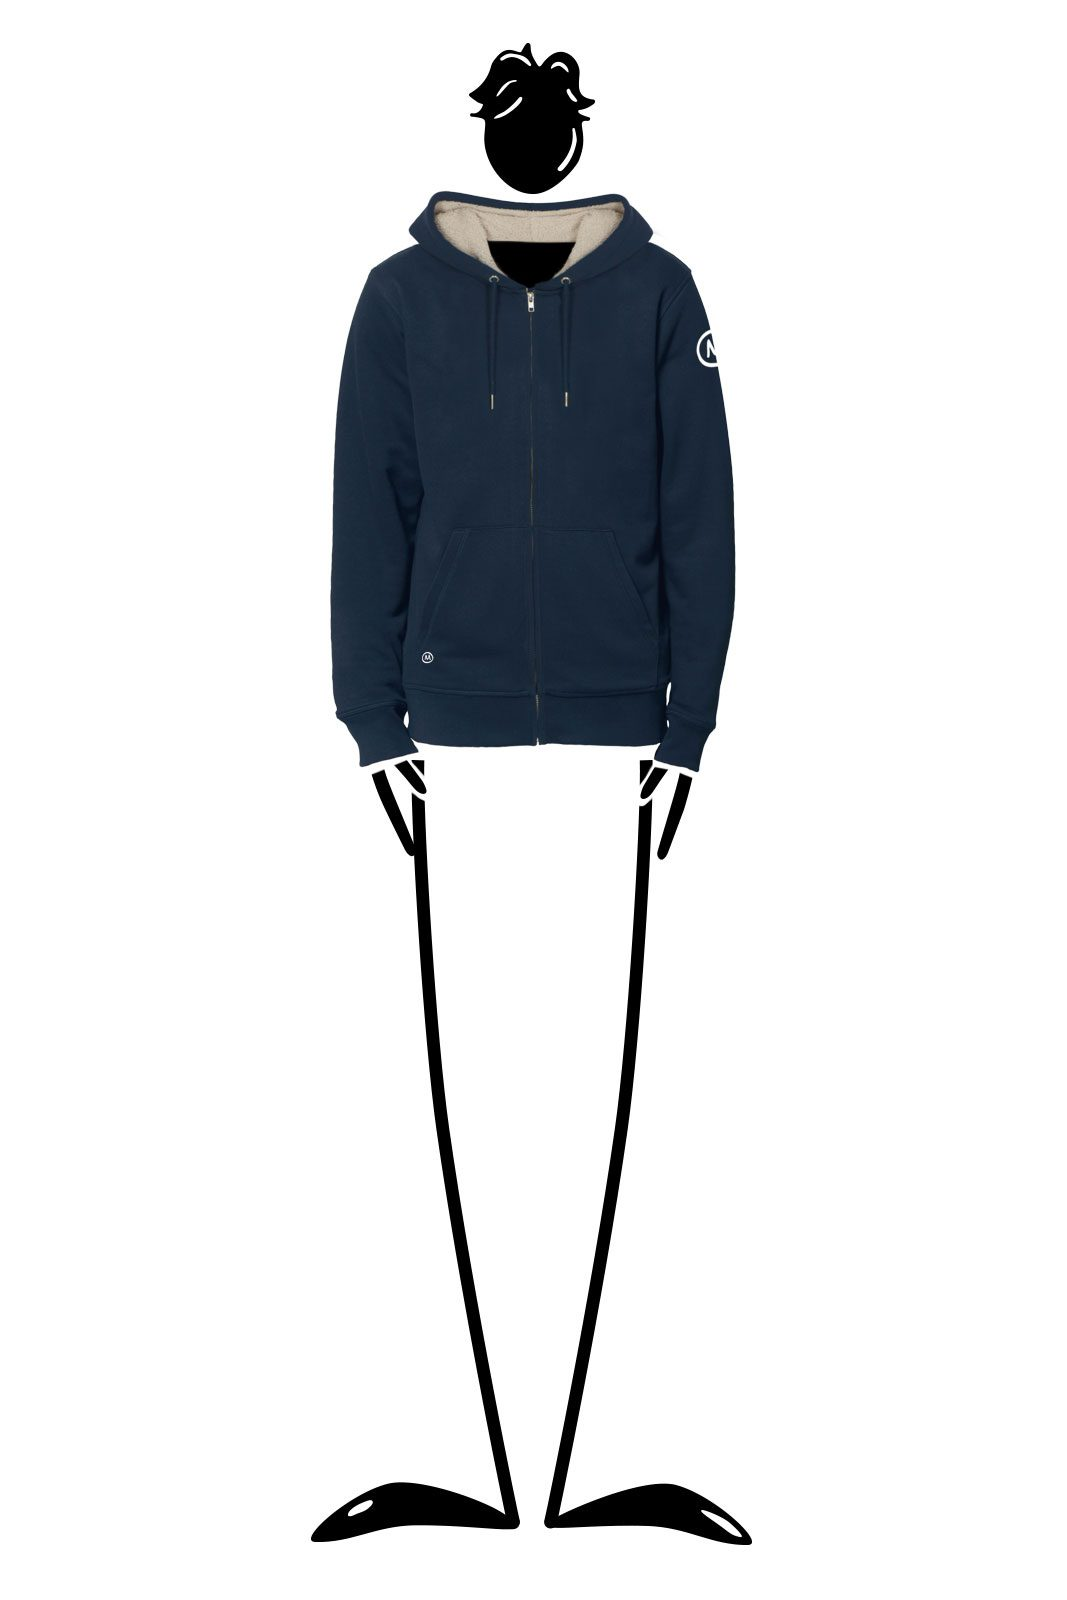 Hoodie full zip unisex navy blue for men SHERPA Monvic